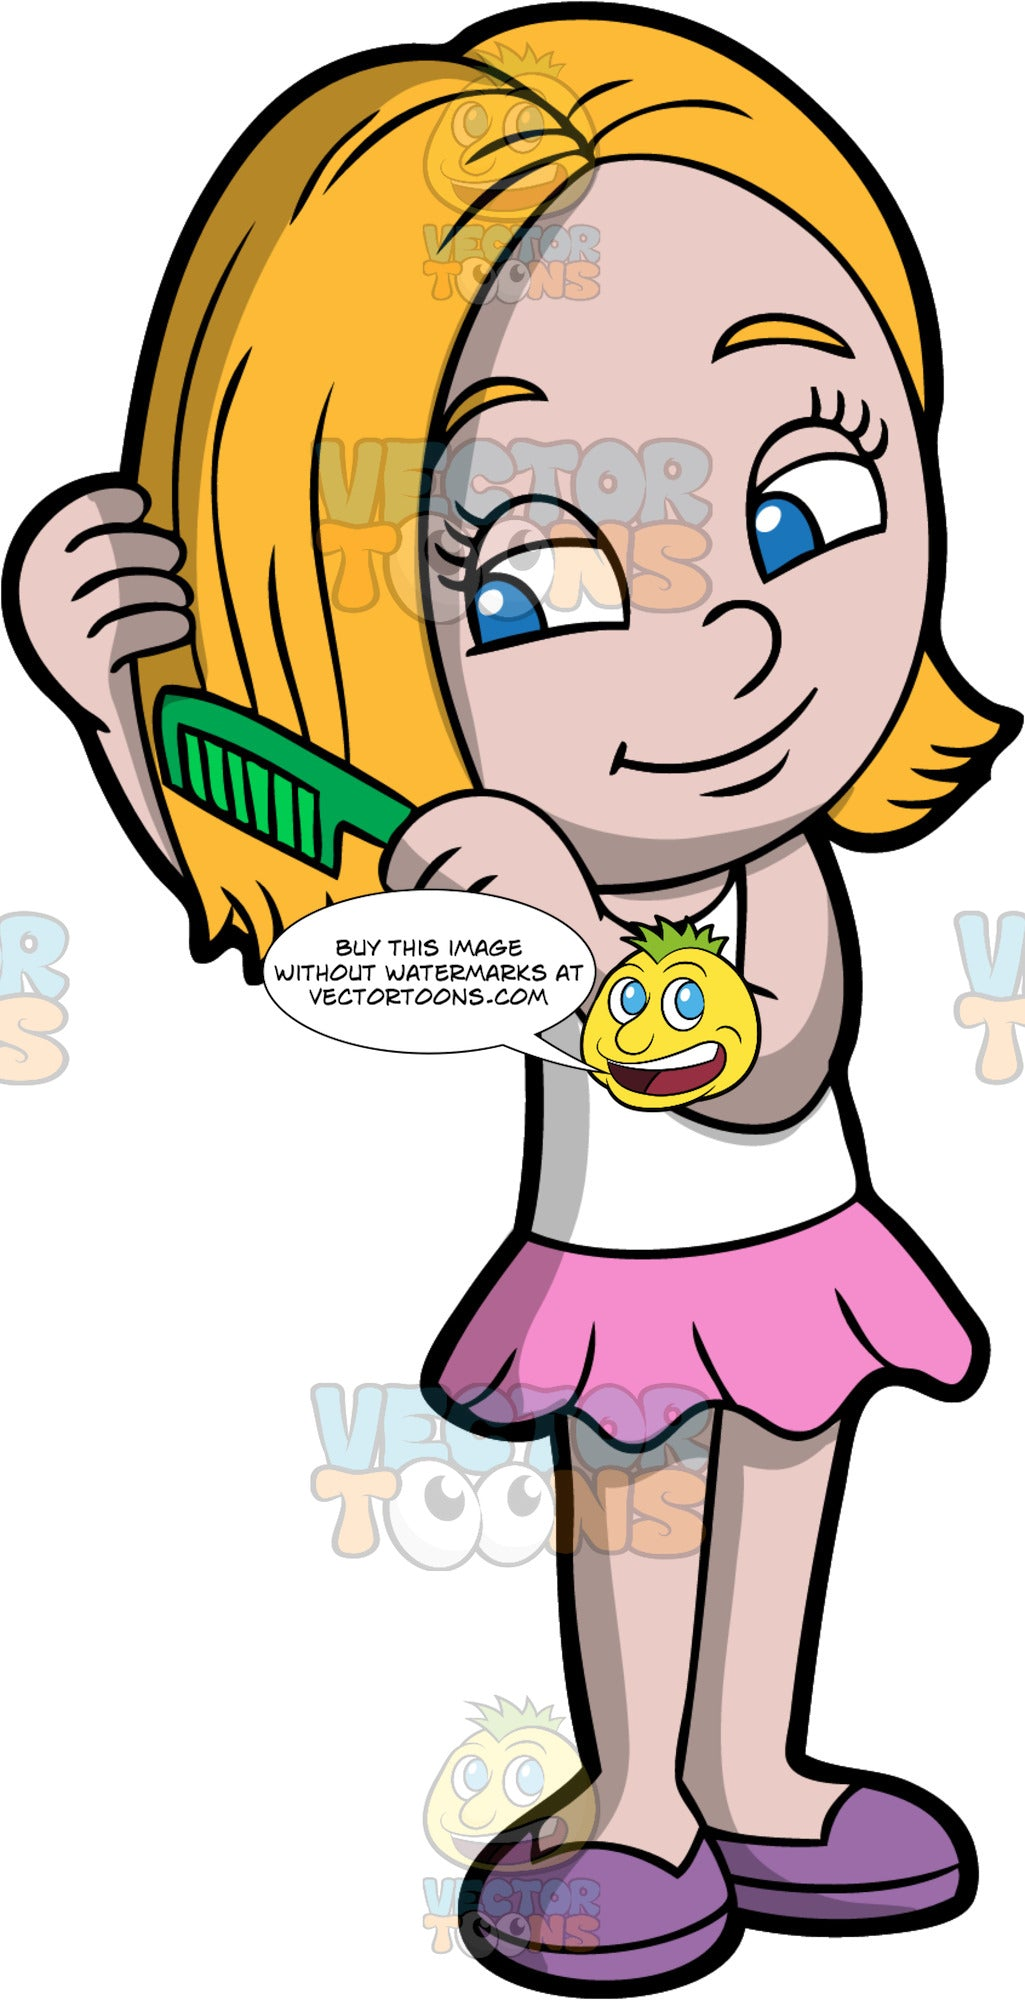 A Pretty Girl Combing Her Hair Clipart Cartoons By Vectortoons